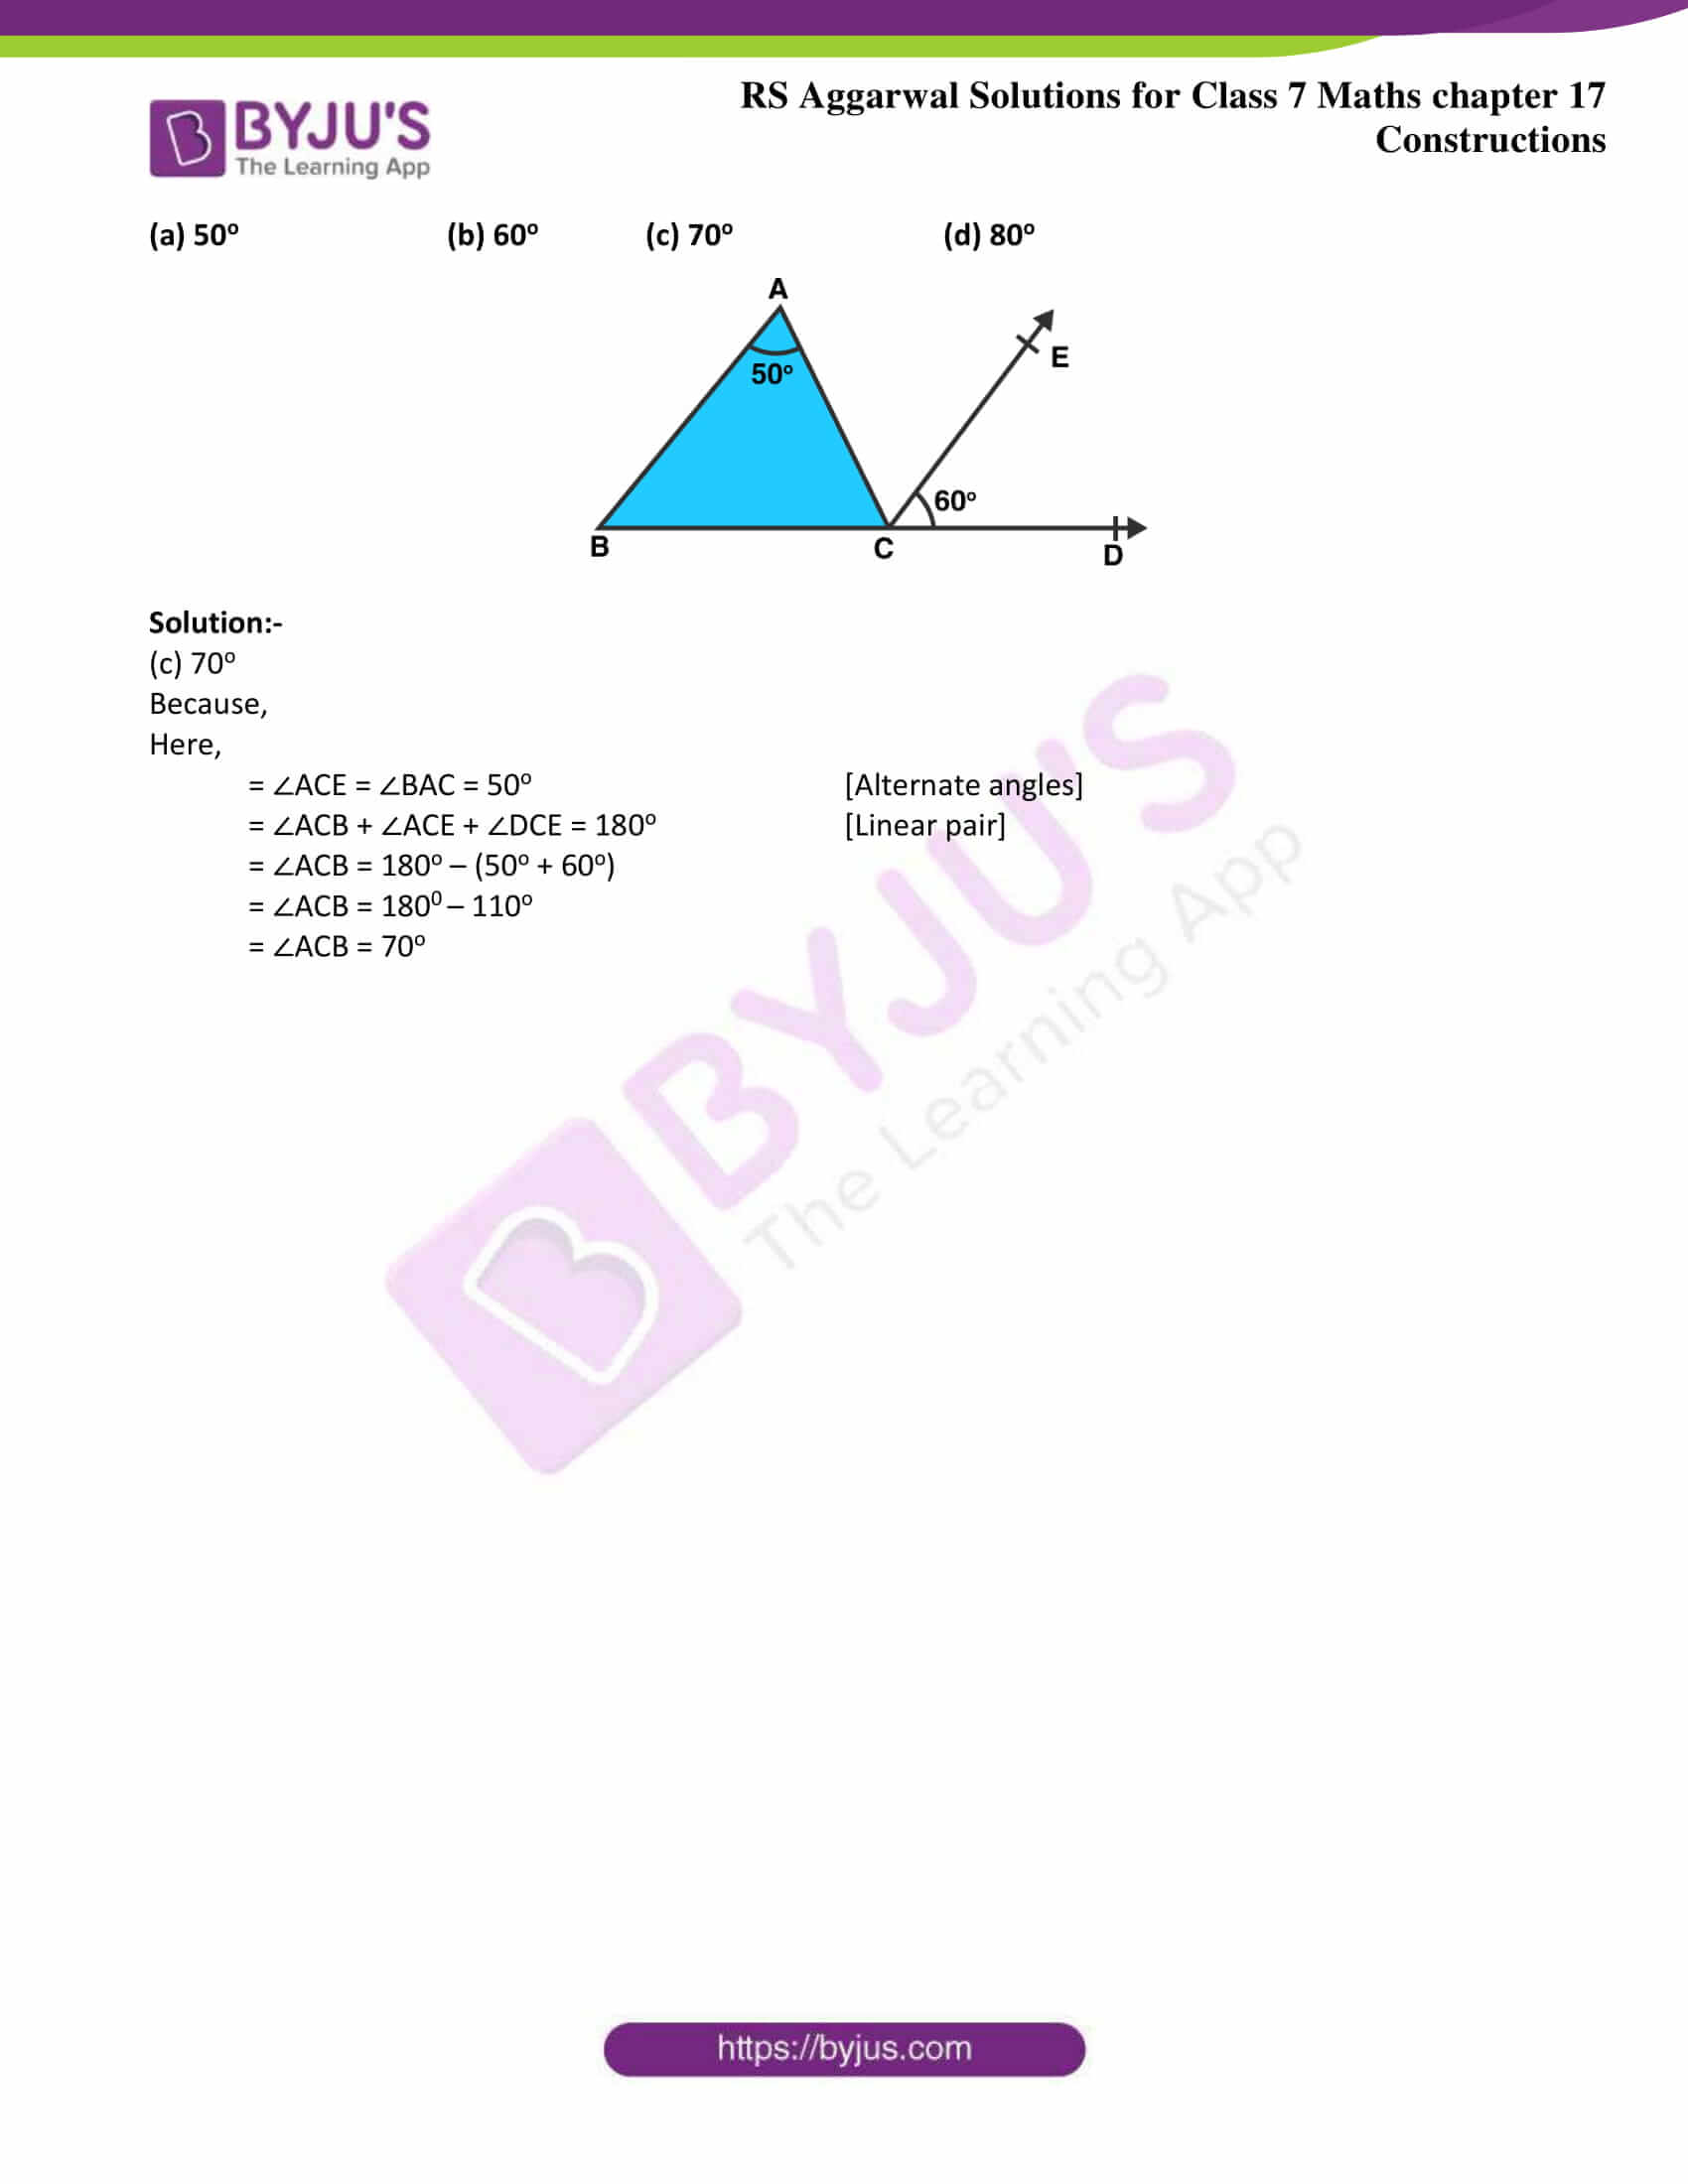 rs aggarwal solution class 7 maths chapter 17 Exercise 17C